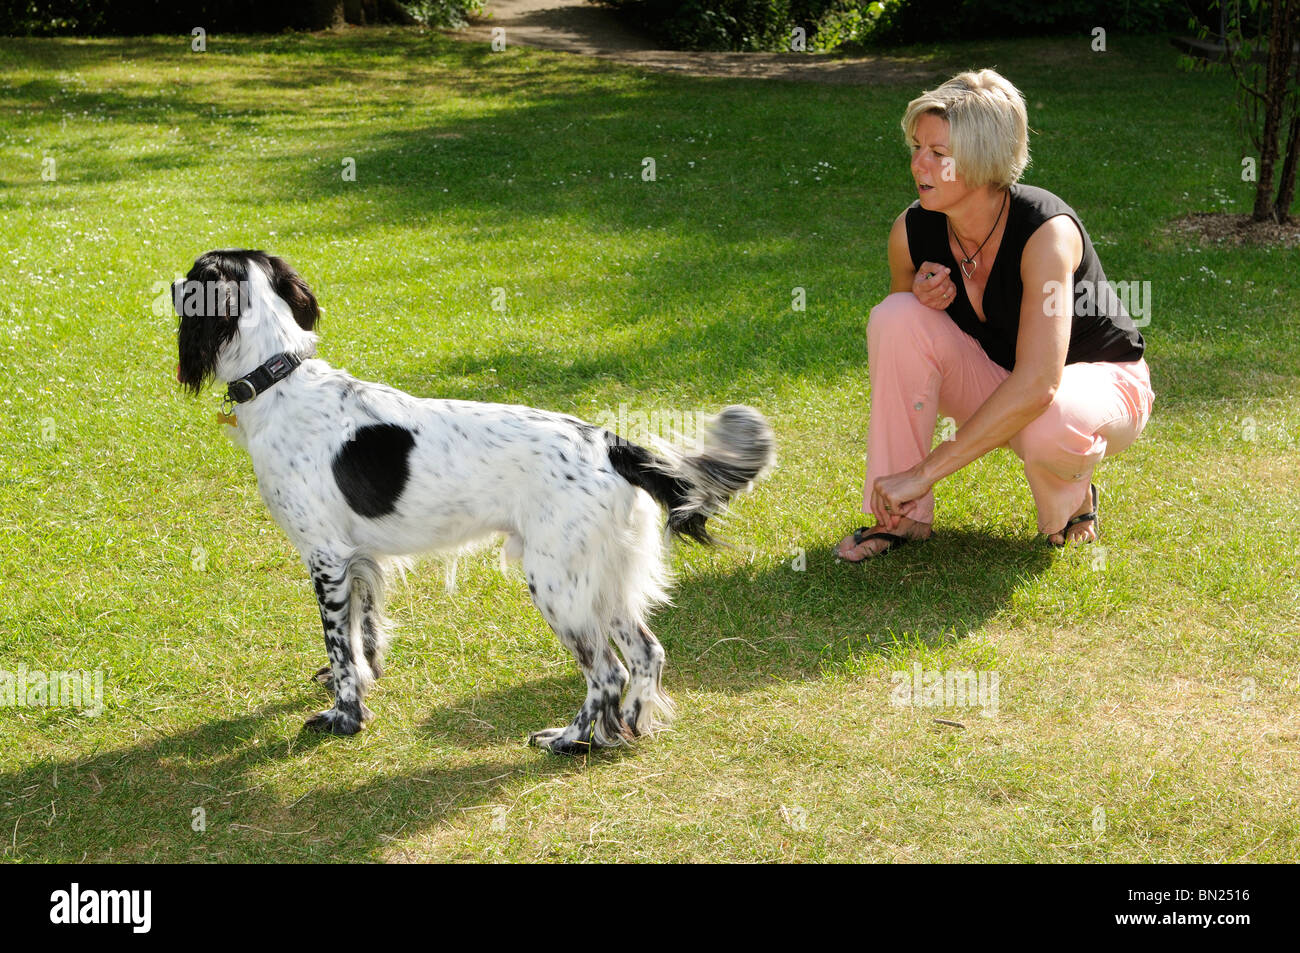 Woman training with a Springer Spaniel dog - Stock Image